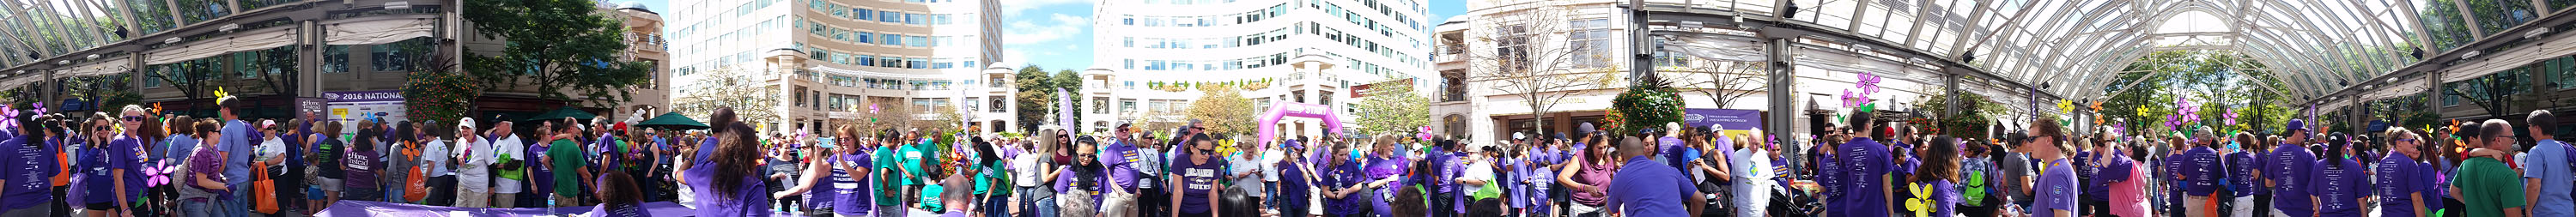 walk-to-end-alzheimers-reston-town-center-02